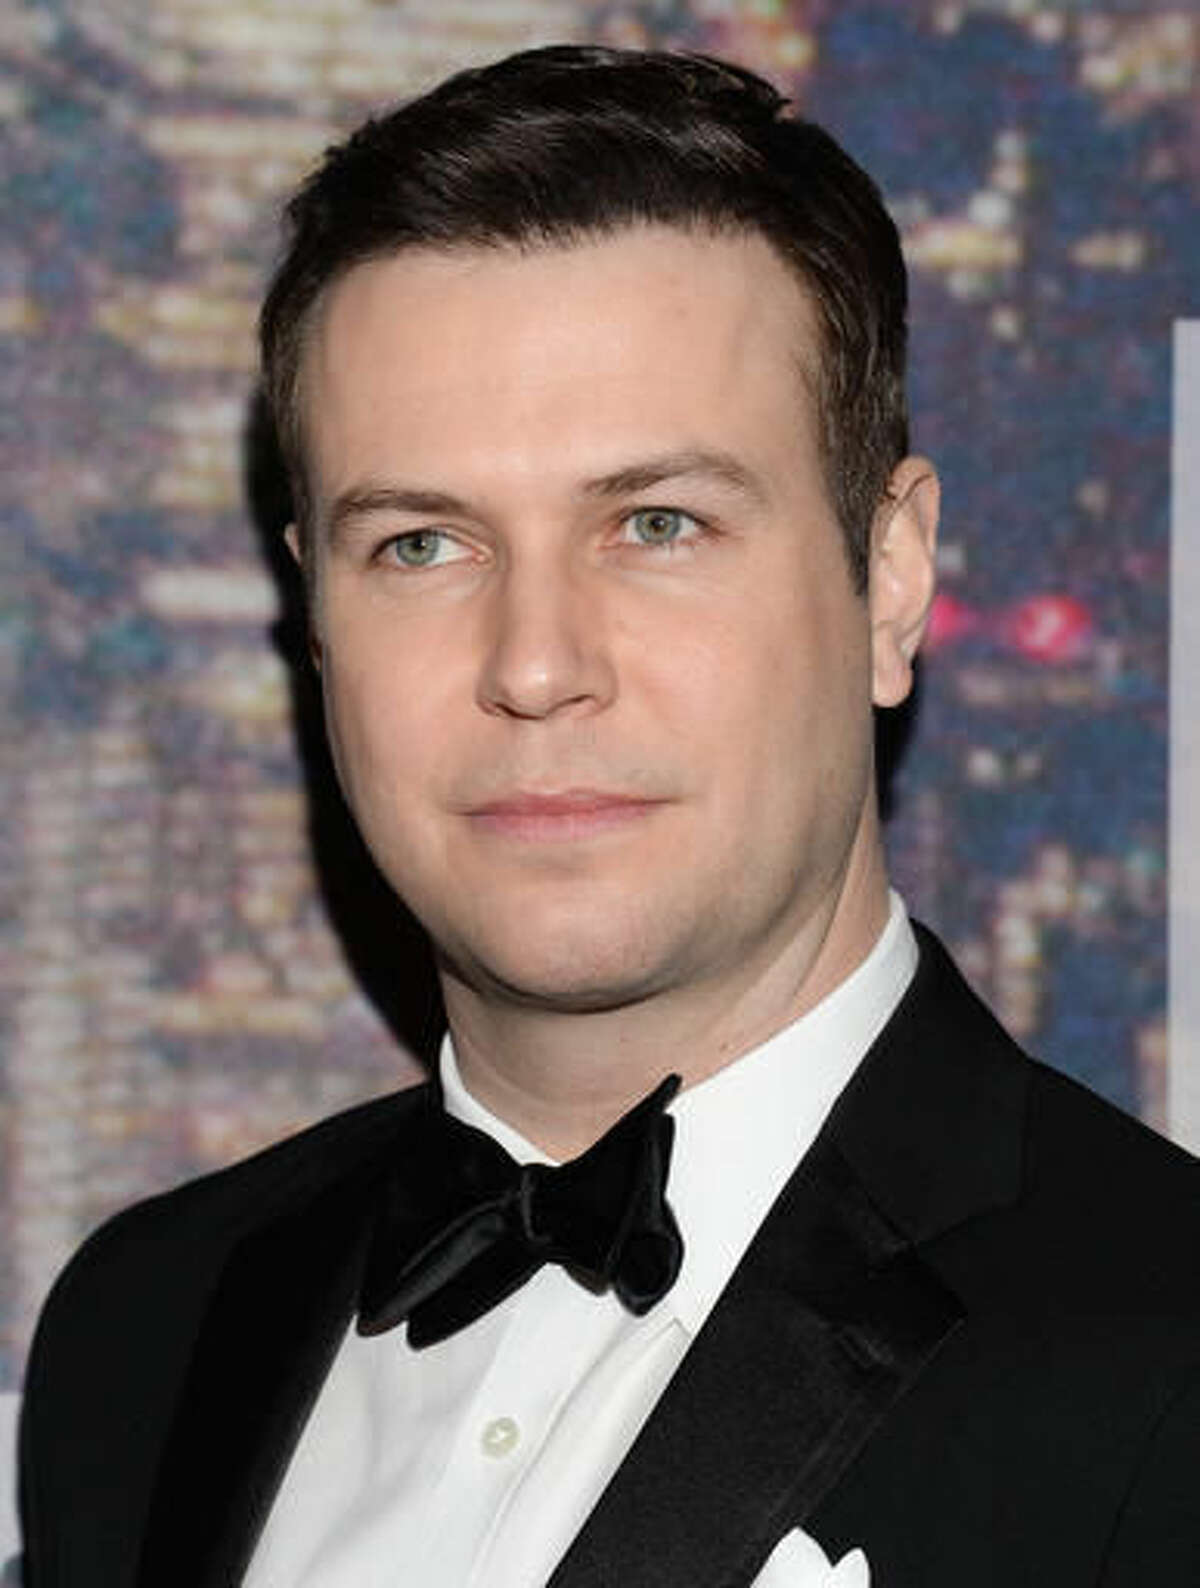 """FILE - In this Feb.15, 2015 file photo, Taran Killam attends the SNL 40th Anniversary Special at Rockefeller Plaza in New York. NBC says """"Saturday Night Live"""" cast members Jay Pharoah and Killam are exiting the show. Pharoah and Killam won't be back when """"SNL"""" returns this fall for its 42nd season, the network said Monday, Aug. 8, 2016. (Photo by Evan Agostini/Invision/AP, File)"""